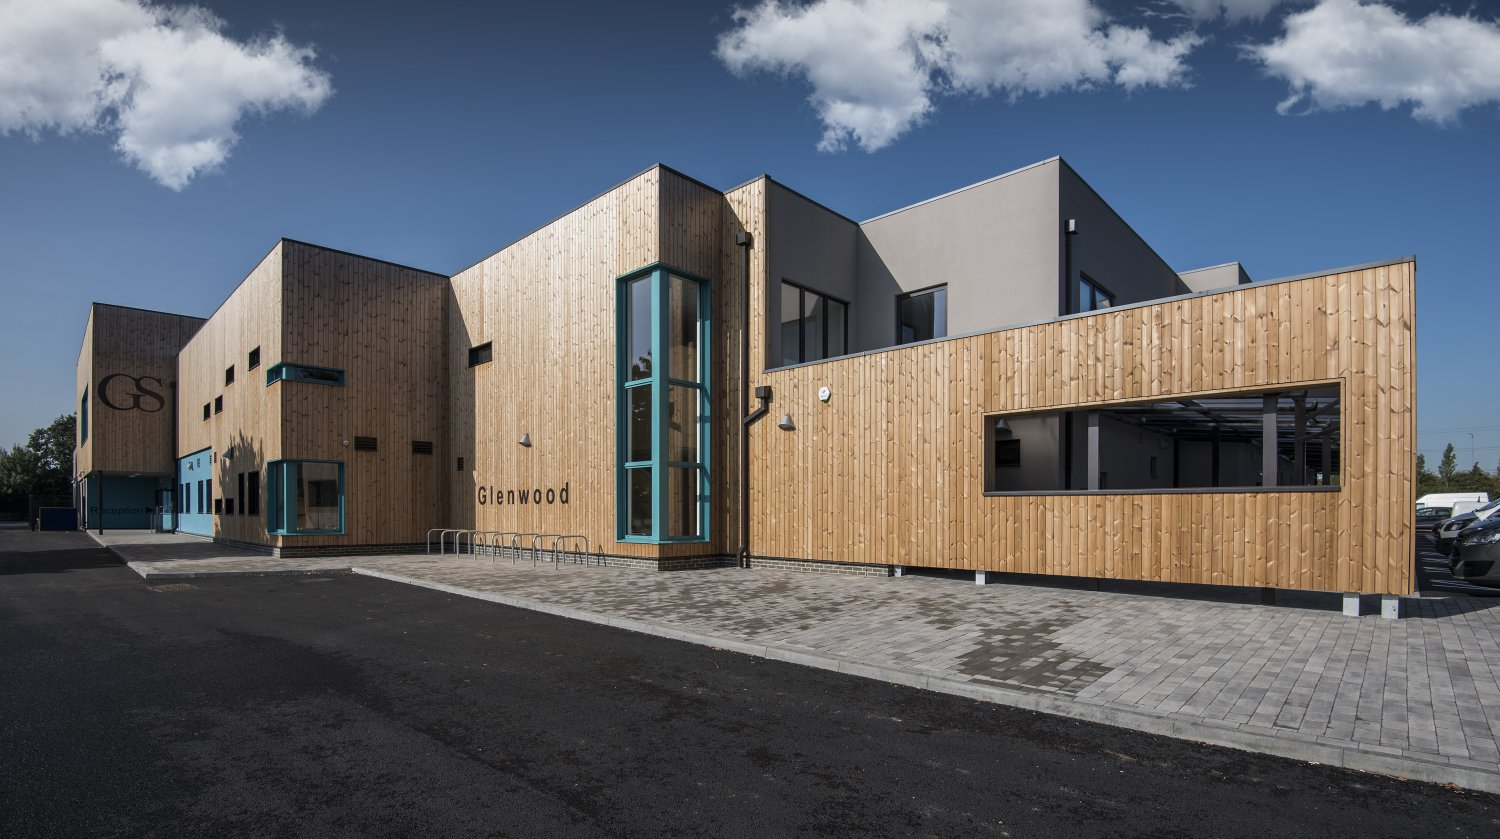 Image of the front of the Glenwood School in Essex showing the wooden cladding used on the exterior